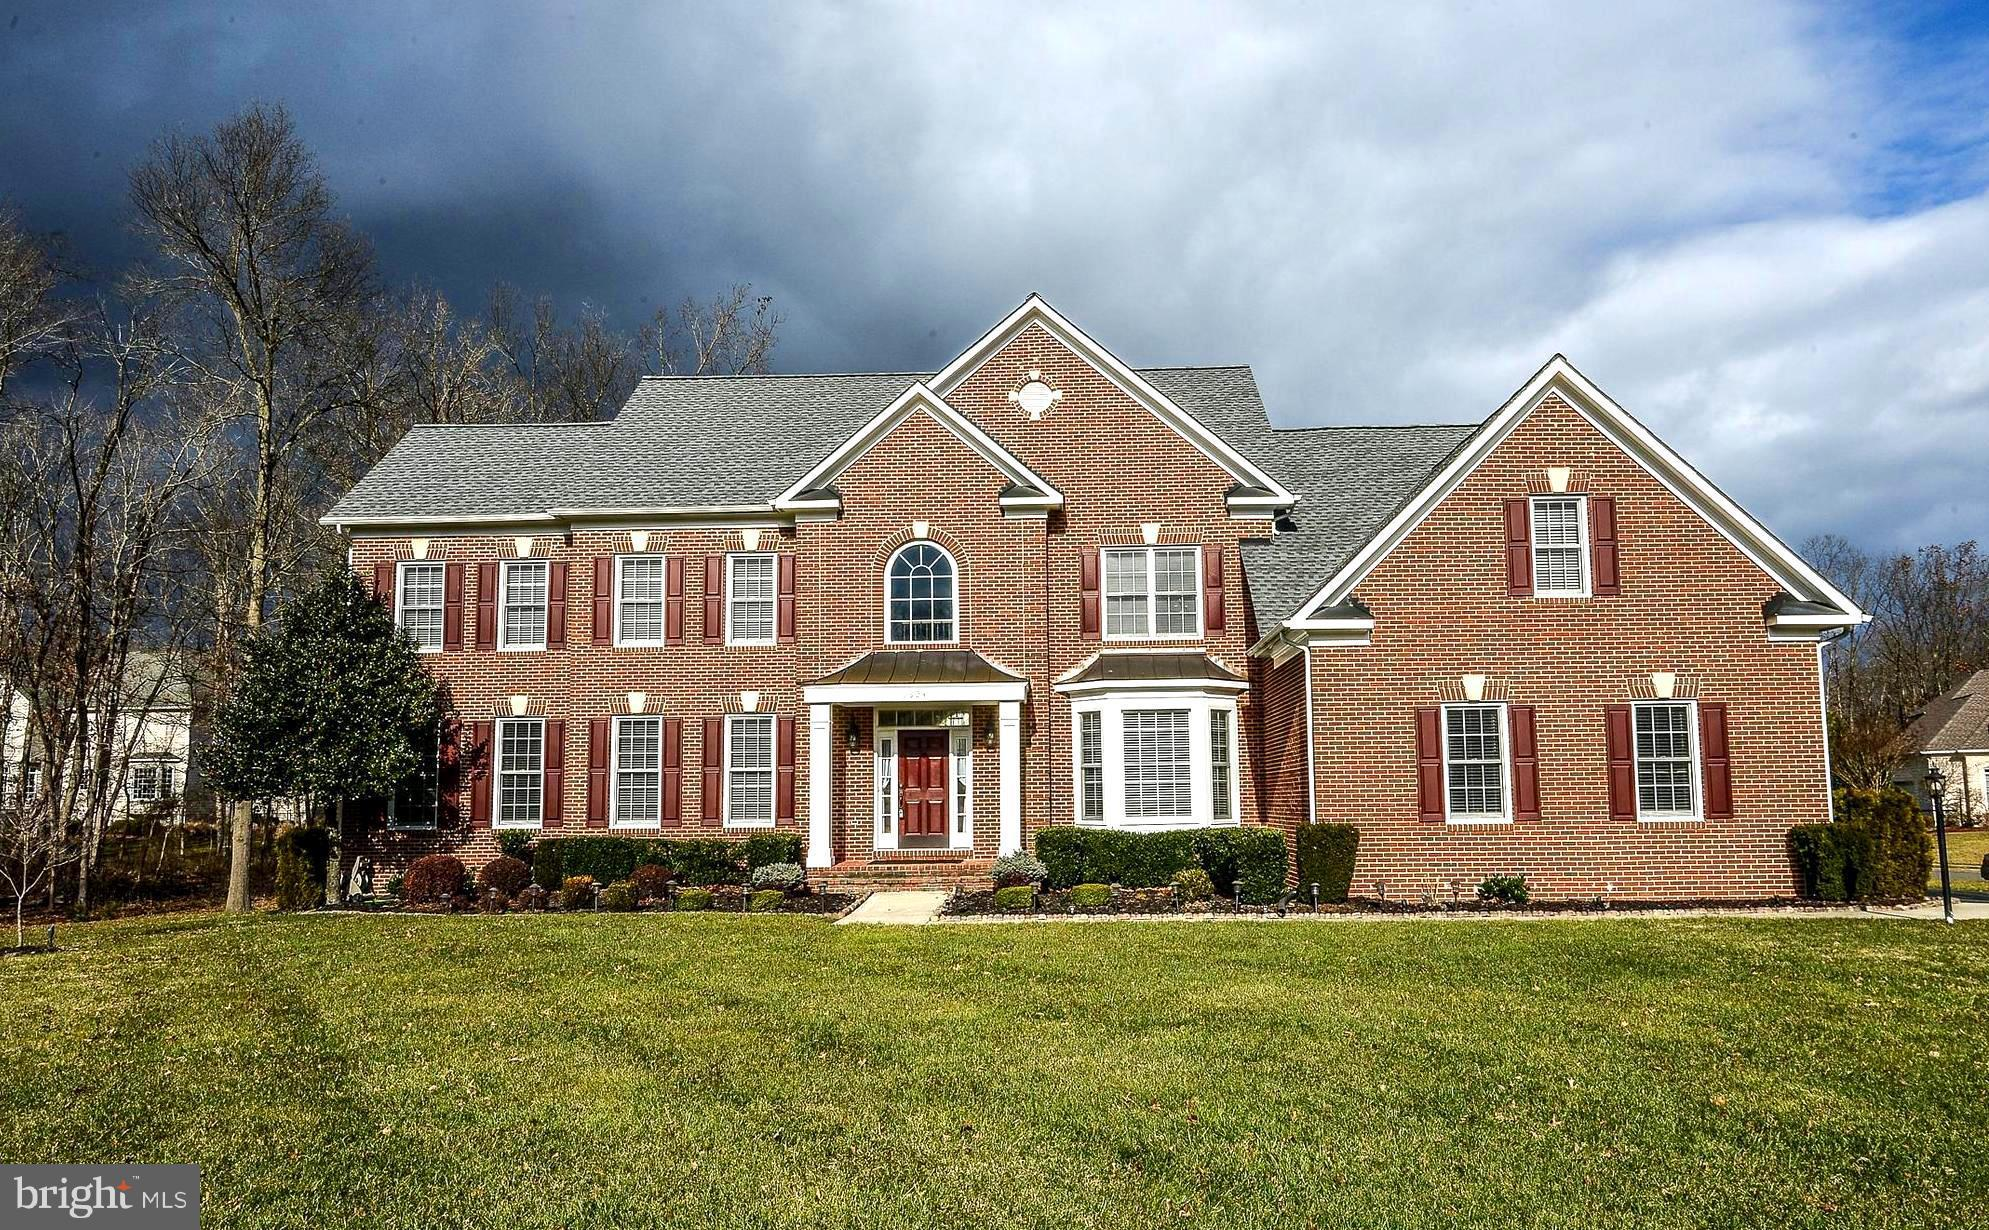 5824 RIDINGS MANOR PLACE, CENTREVILLE, VA 20120